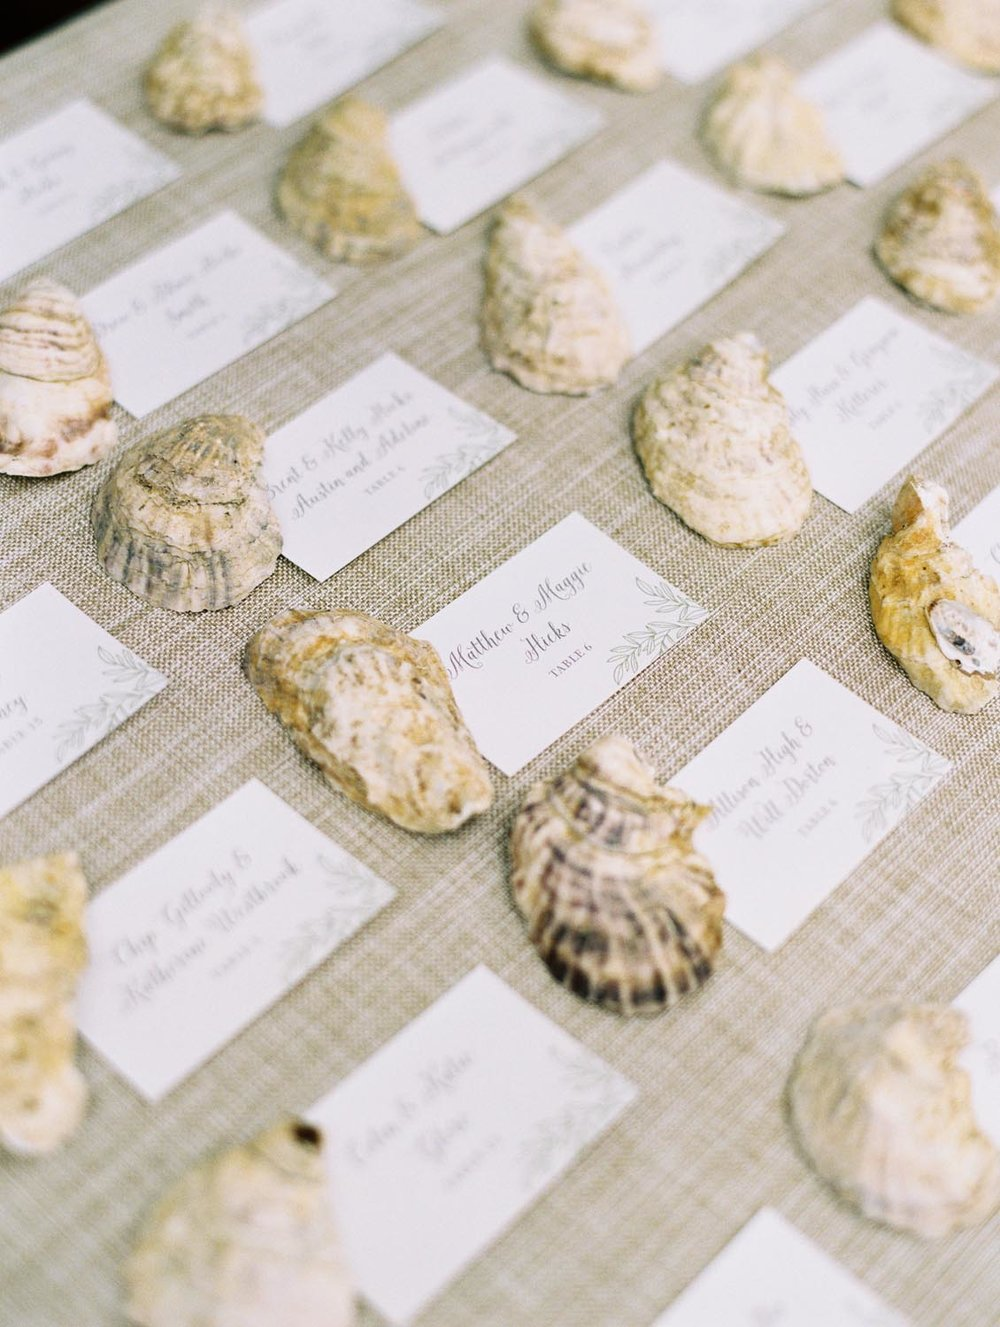 Coastal wedding details. Wedding planning and design by A Charleston Bride.